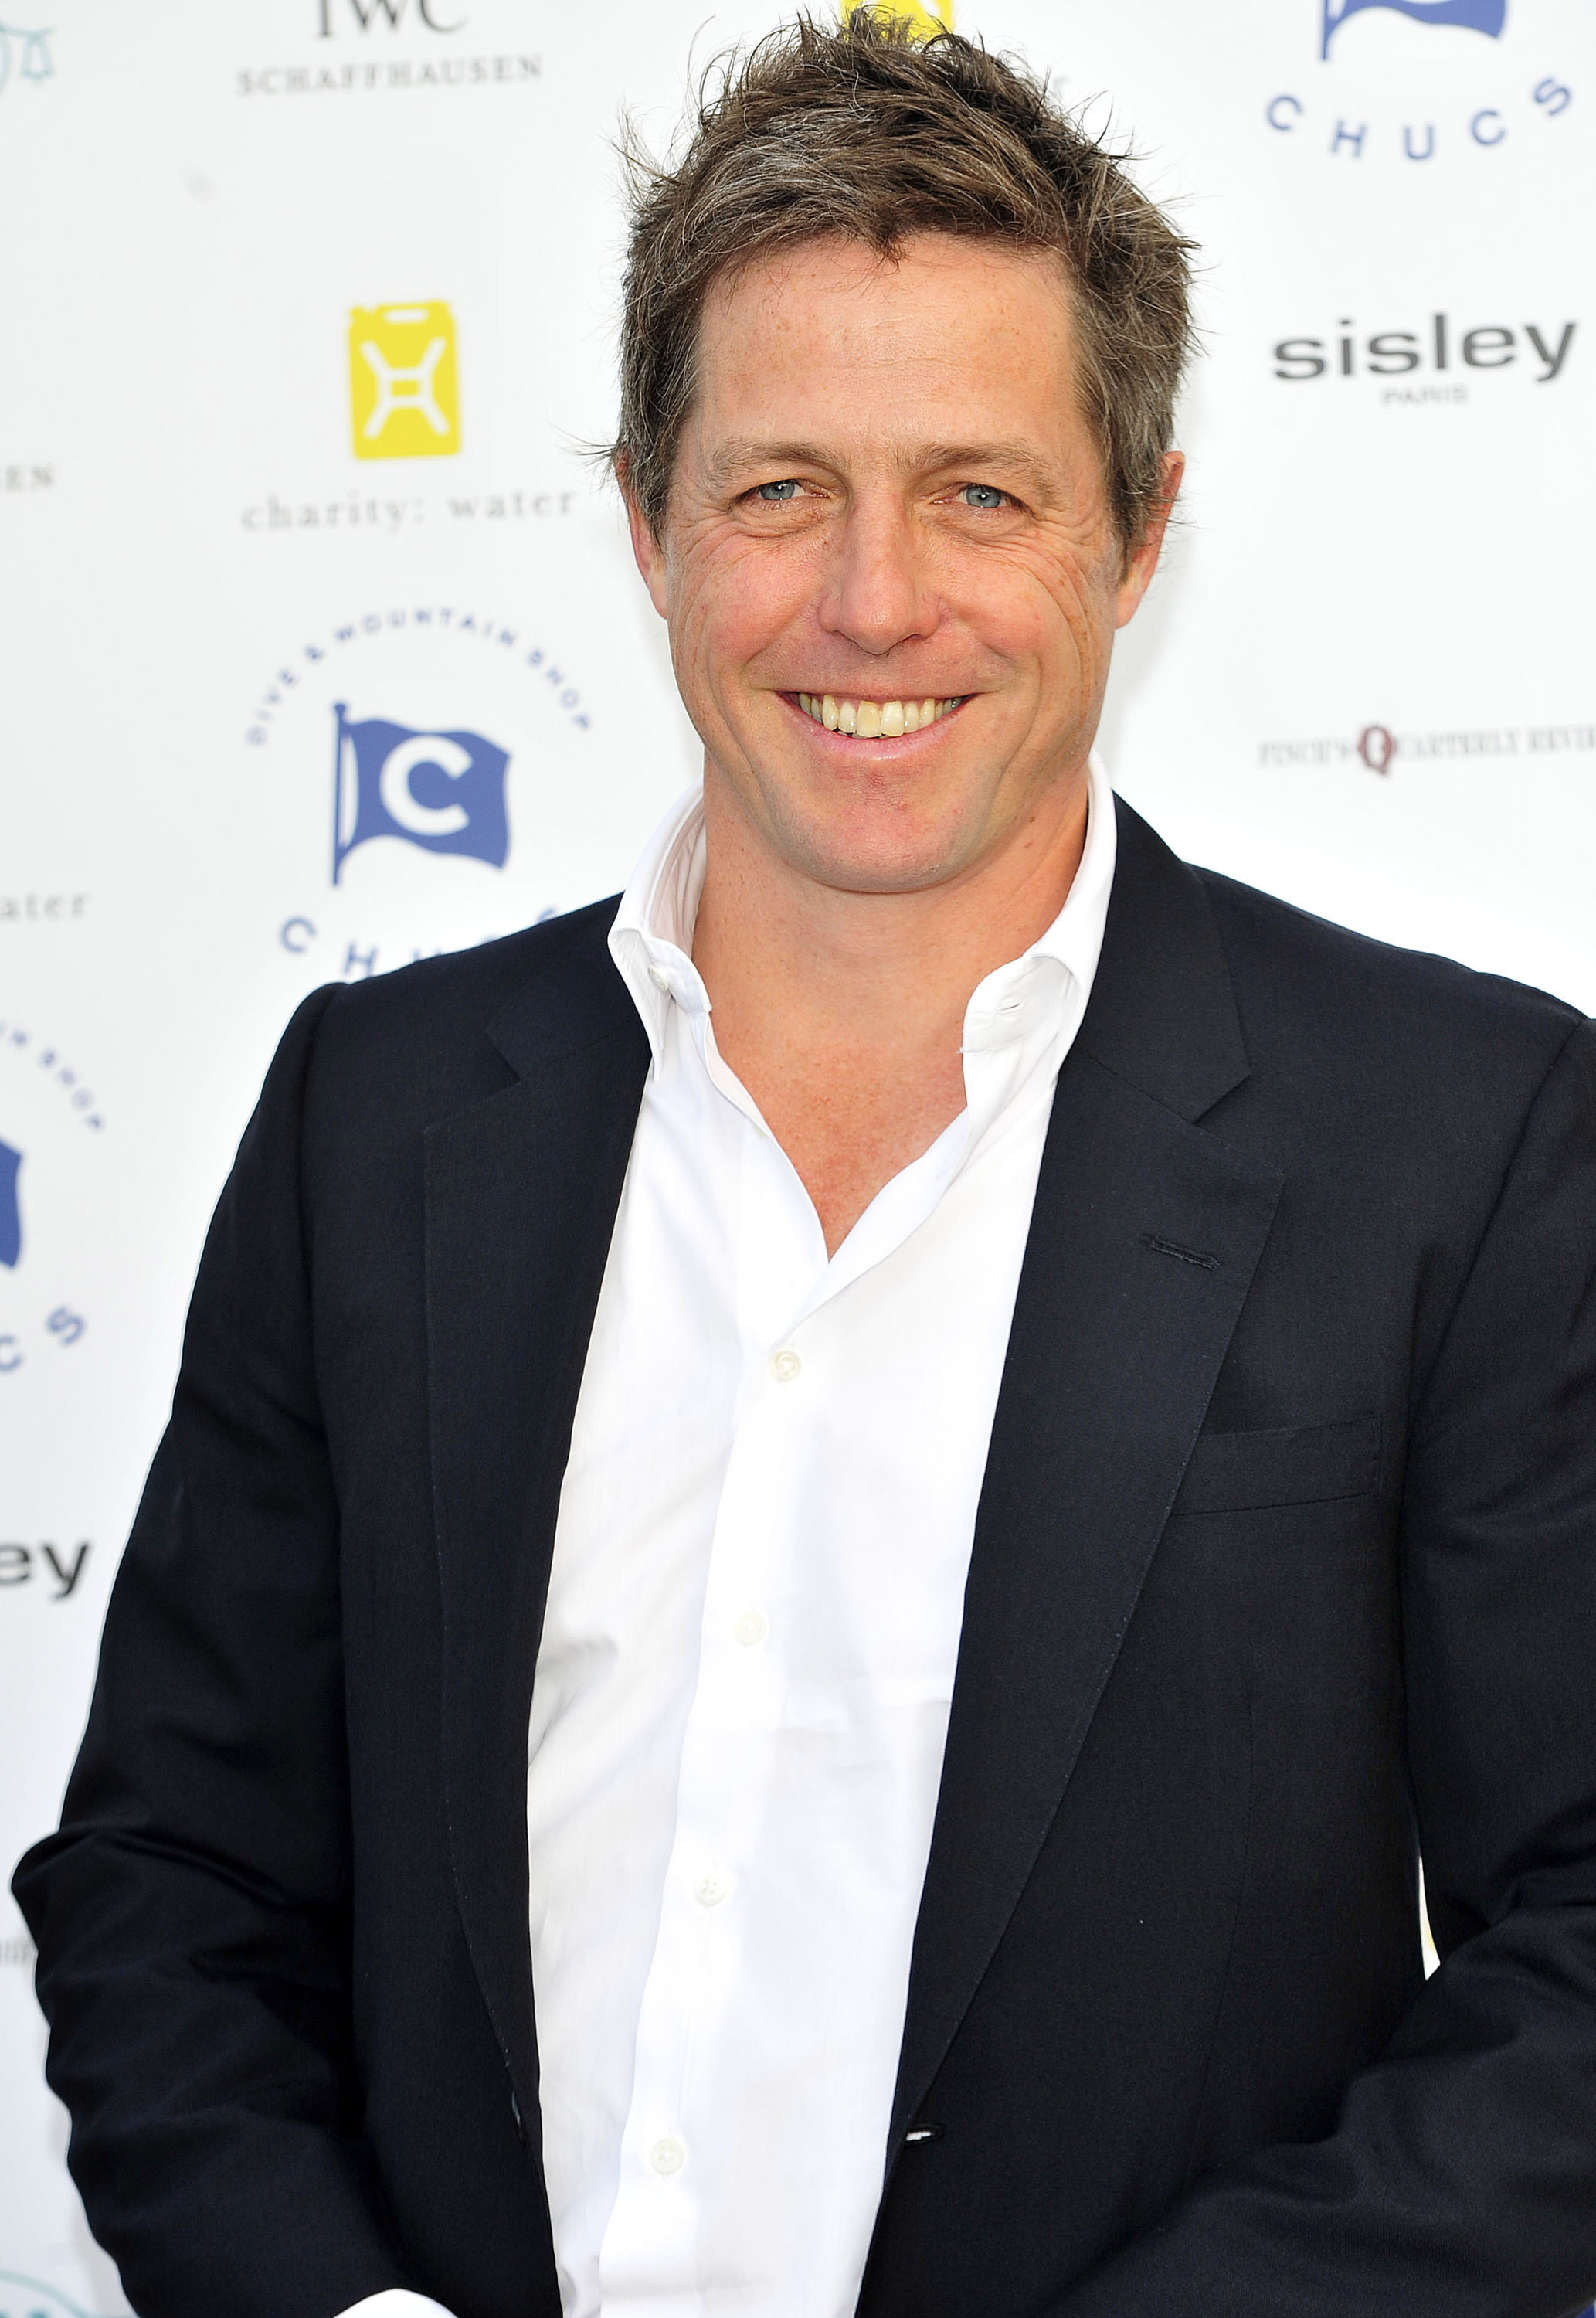 Hugh Grant on fatherhood